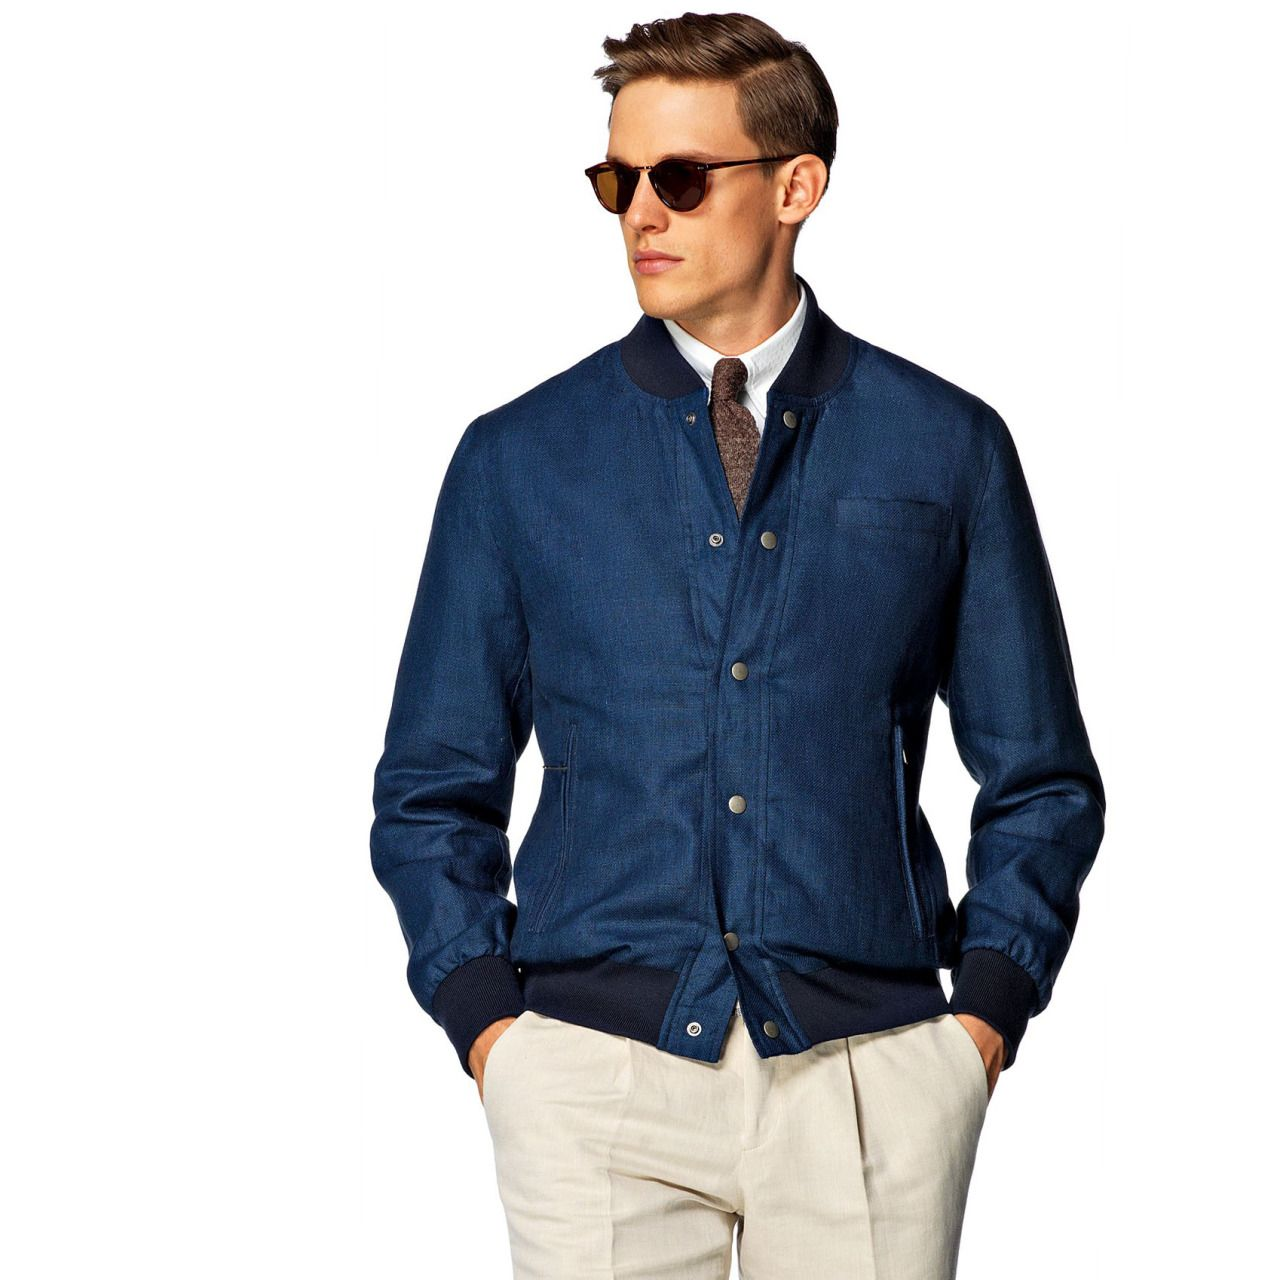 Zafer Dede Suitsupply This Jacket Design Combines The Men - Mens hairstyle zafer